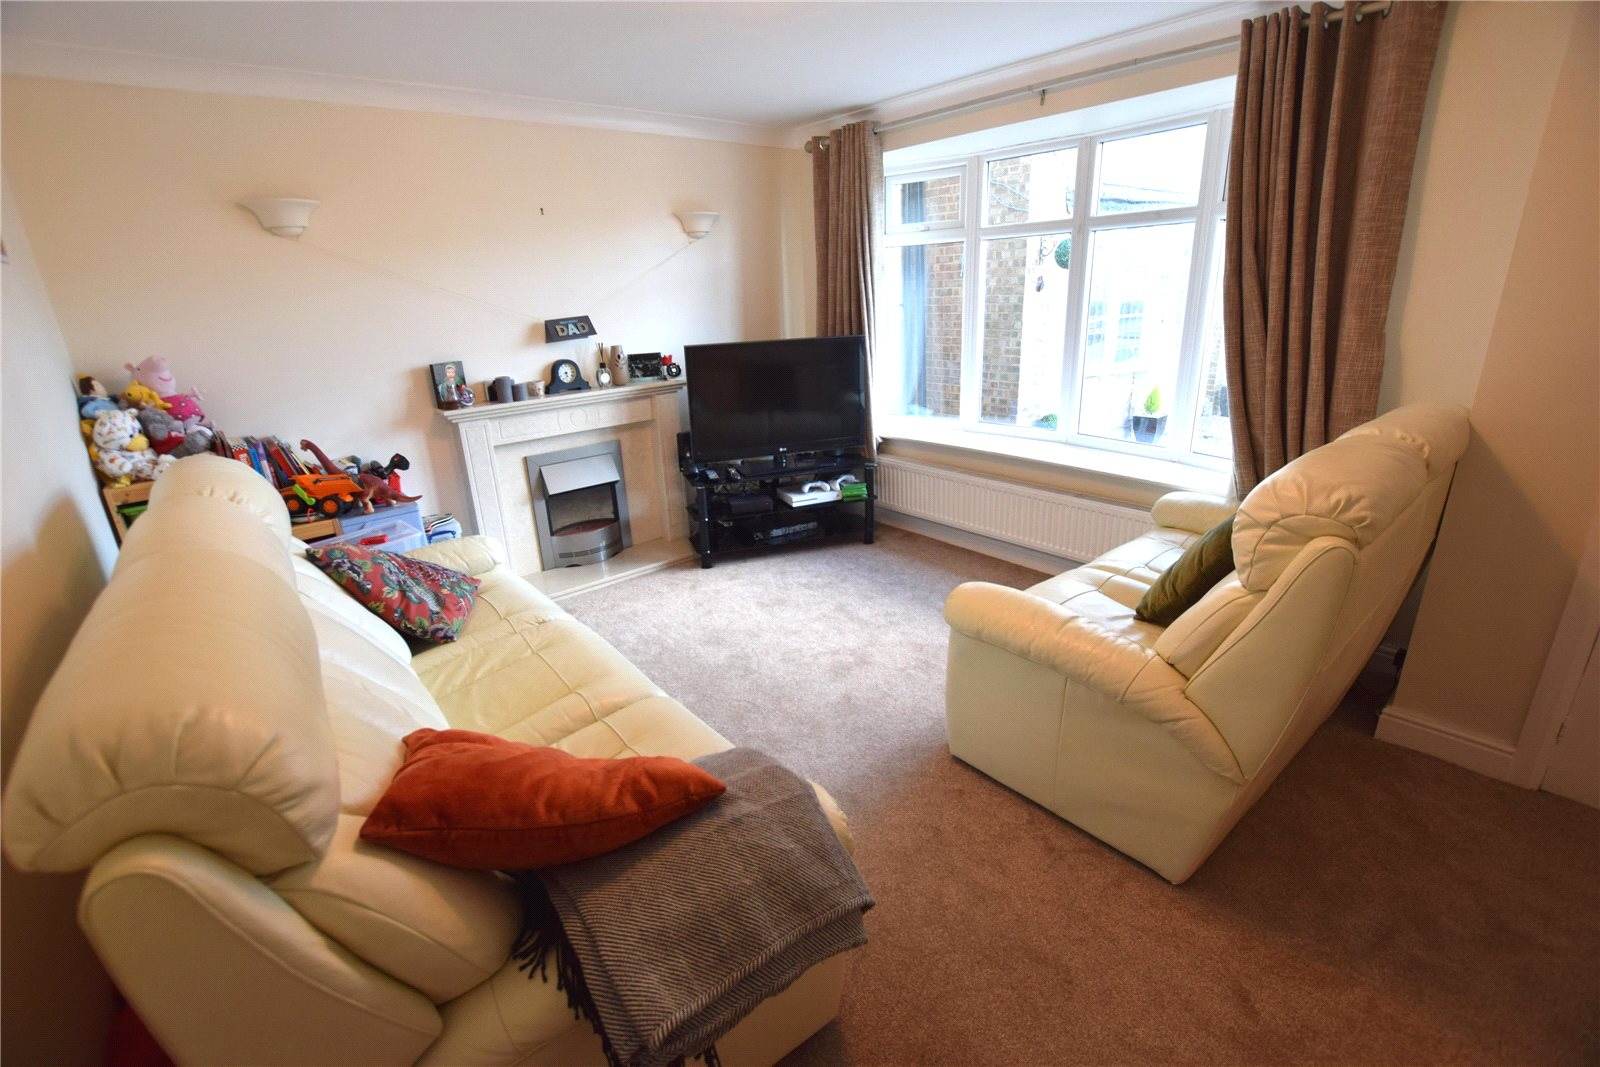 Property for sale in Wortley, interior living room